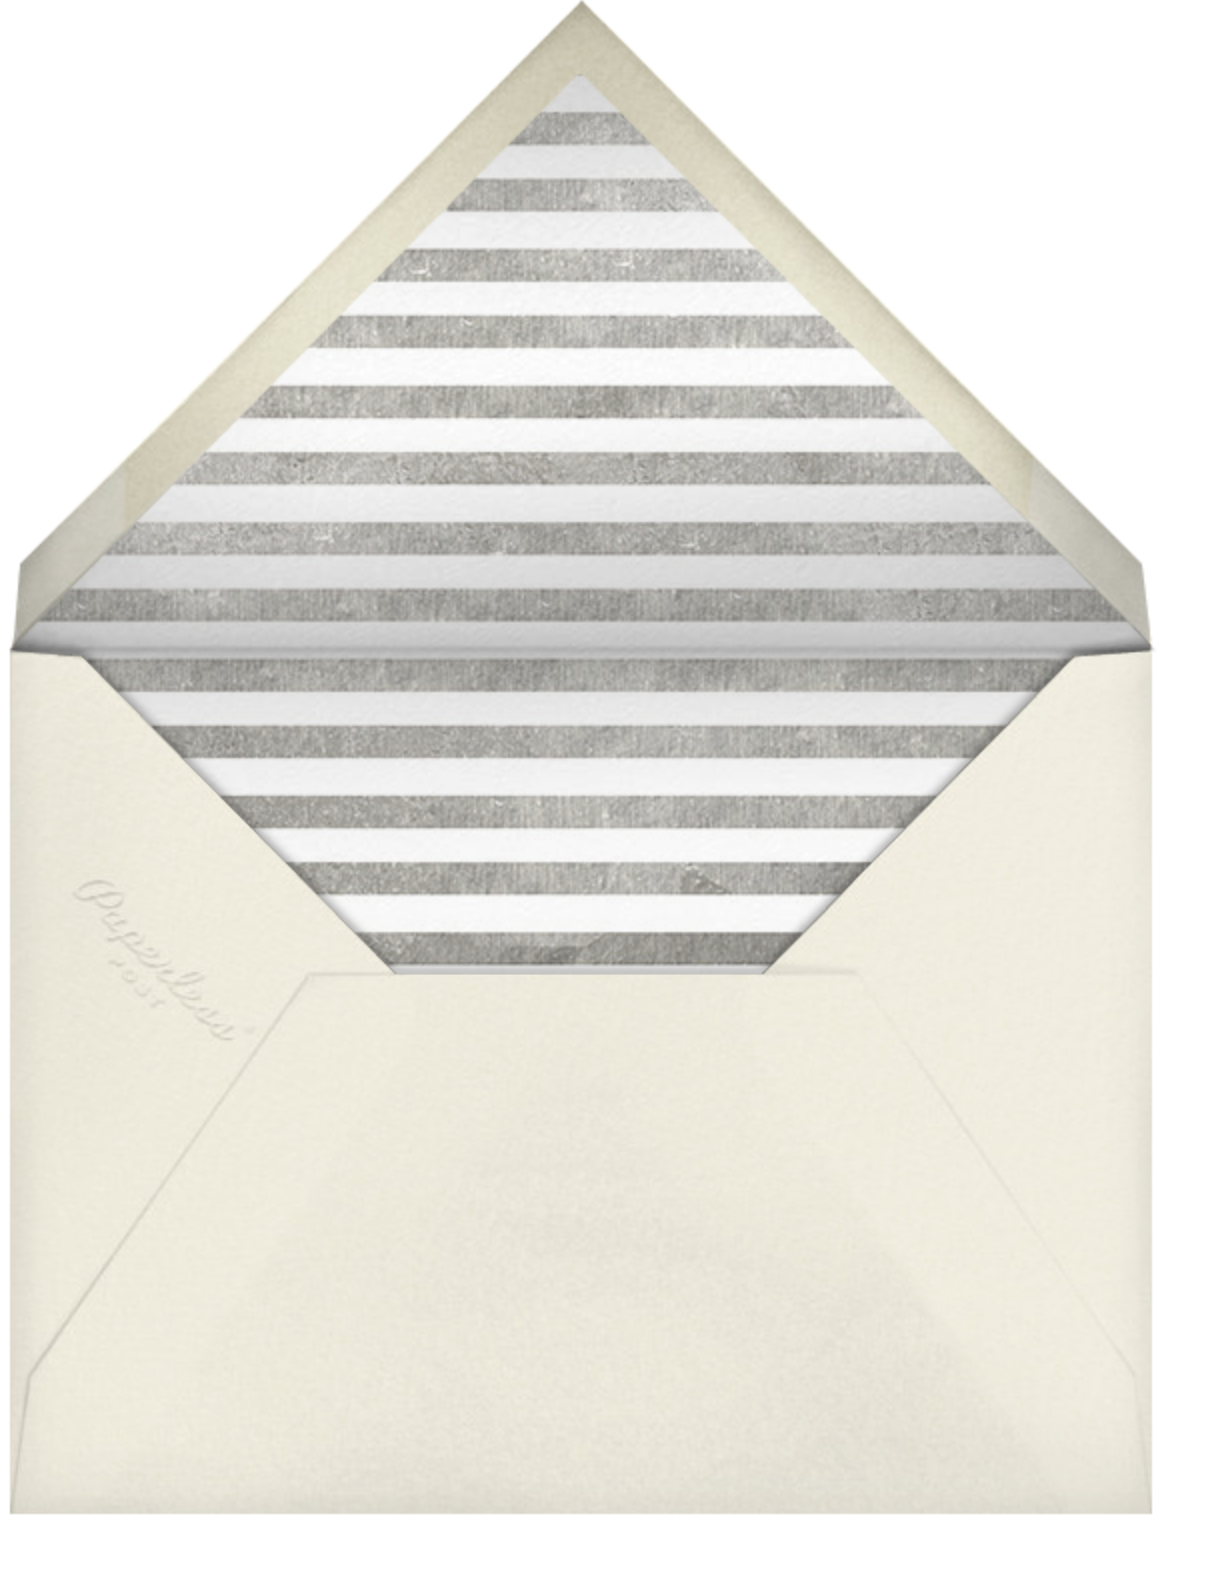 Deco Invite - Blue and SIlver - The Indigo Bunting - Winter entertaining - envelope back